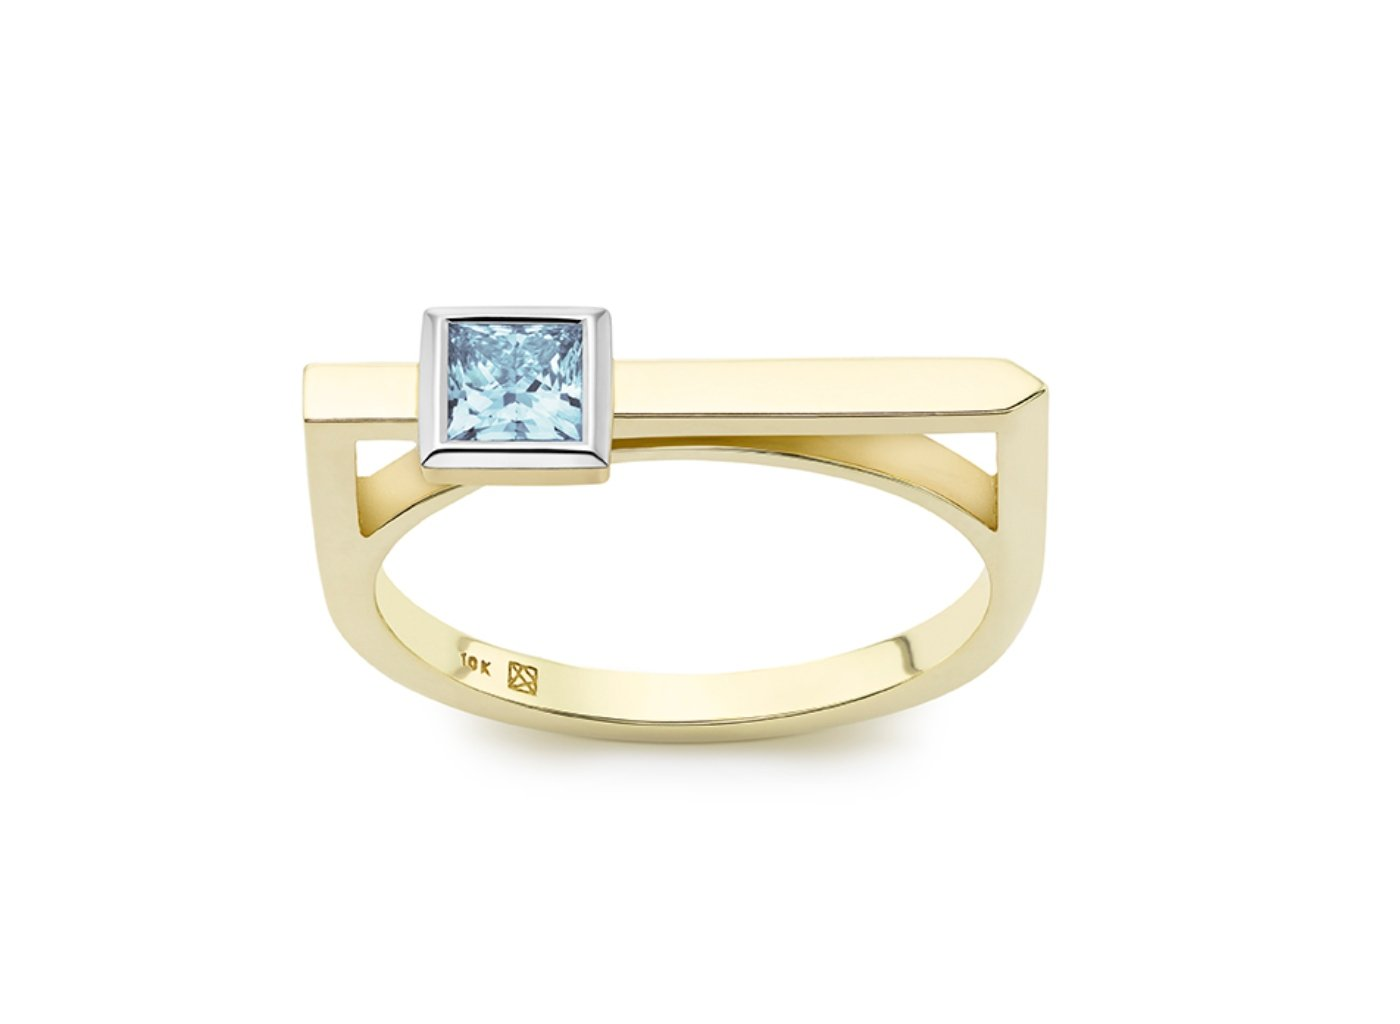 Front view of Princess linear 3/8 carat ring with blue diamond